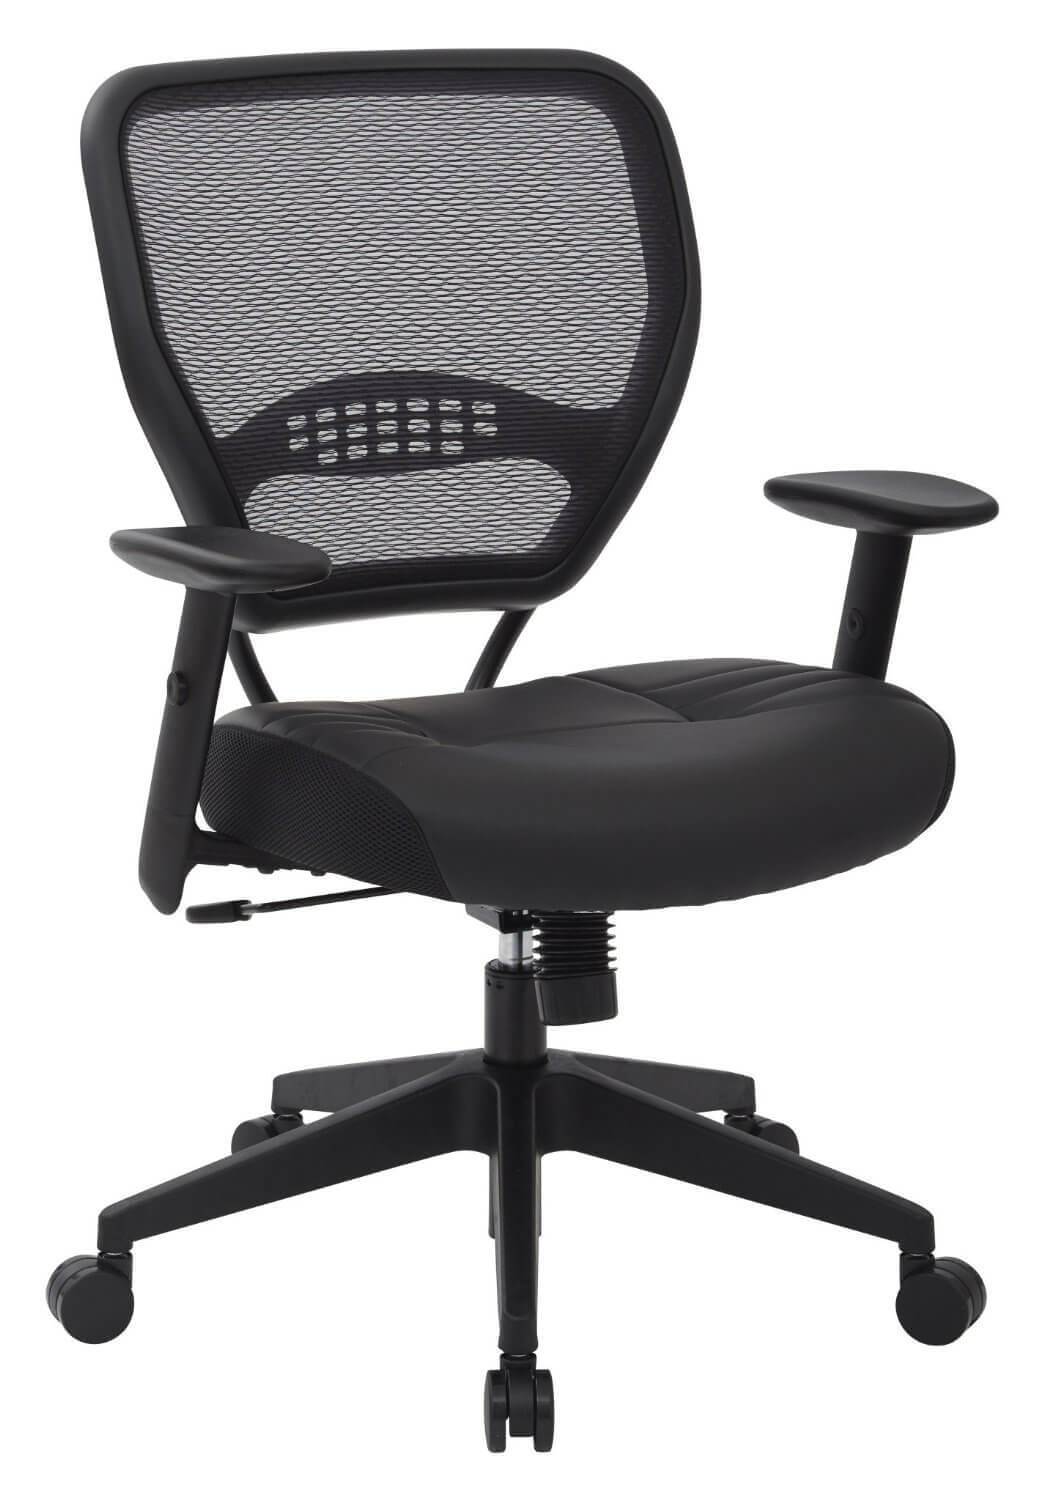 Best Office Chair under 200 Reviews  Buyers Guide